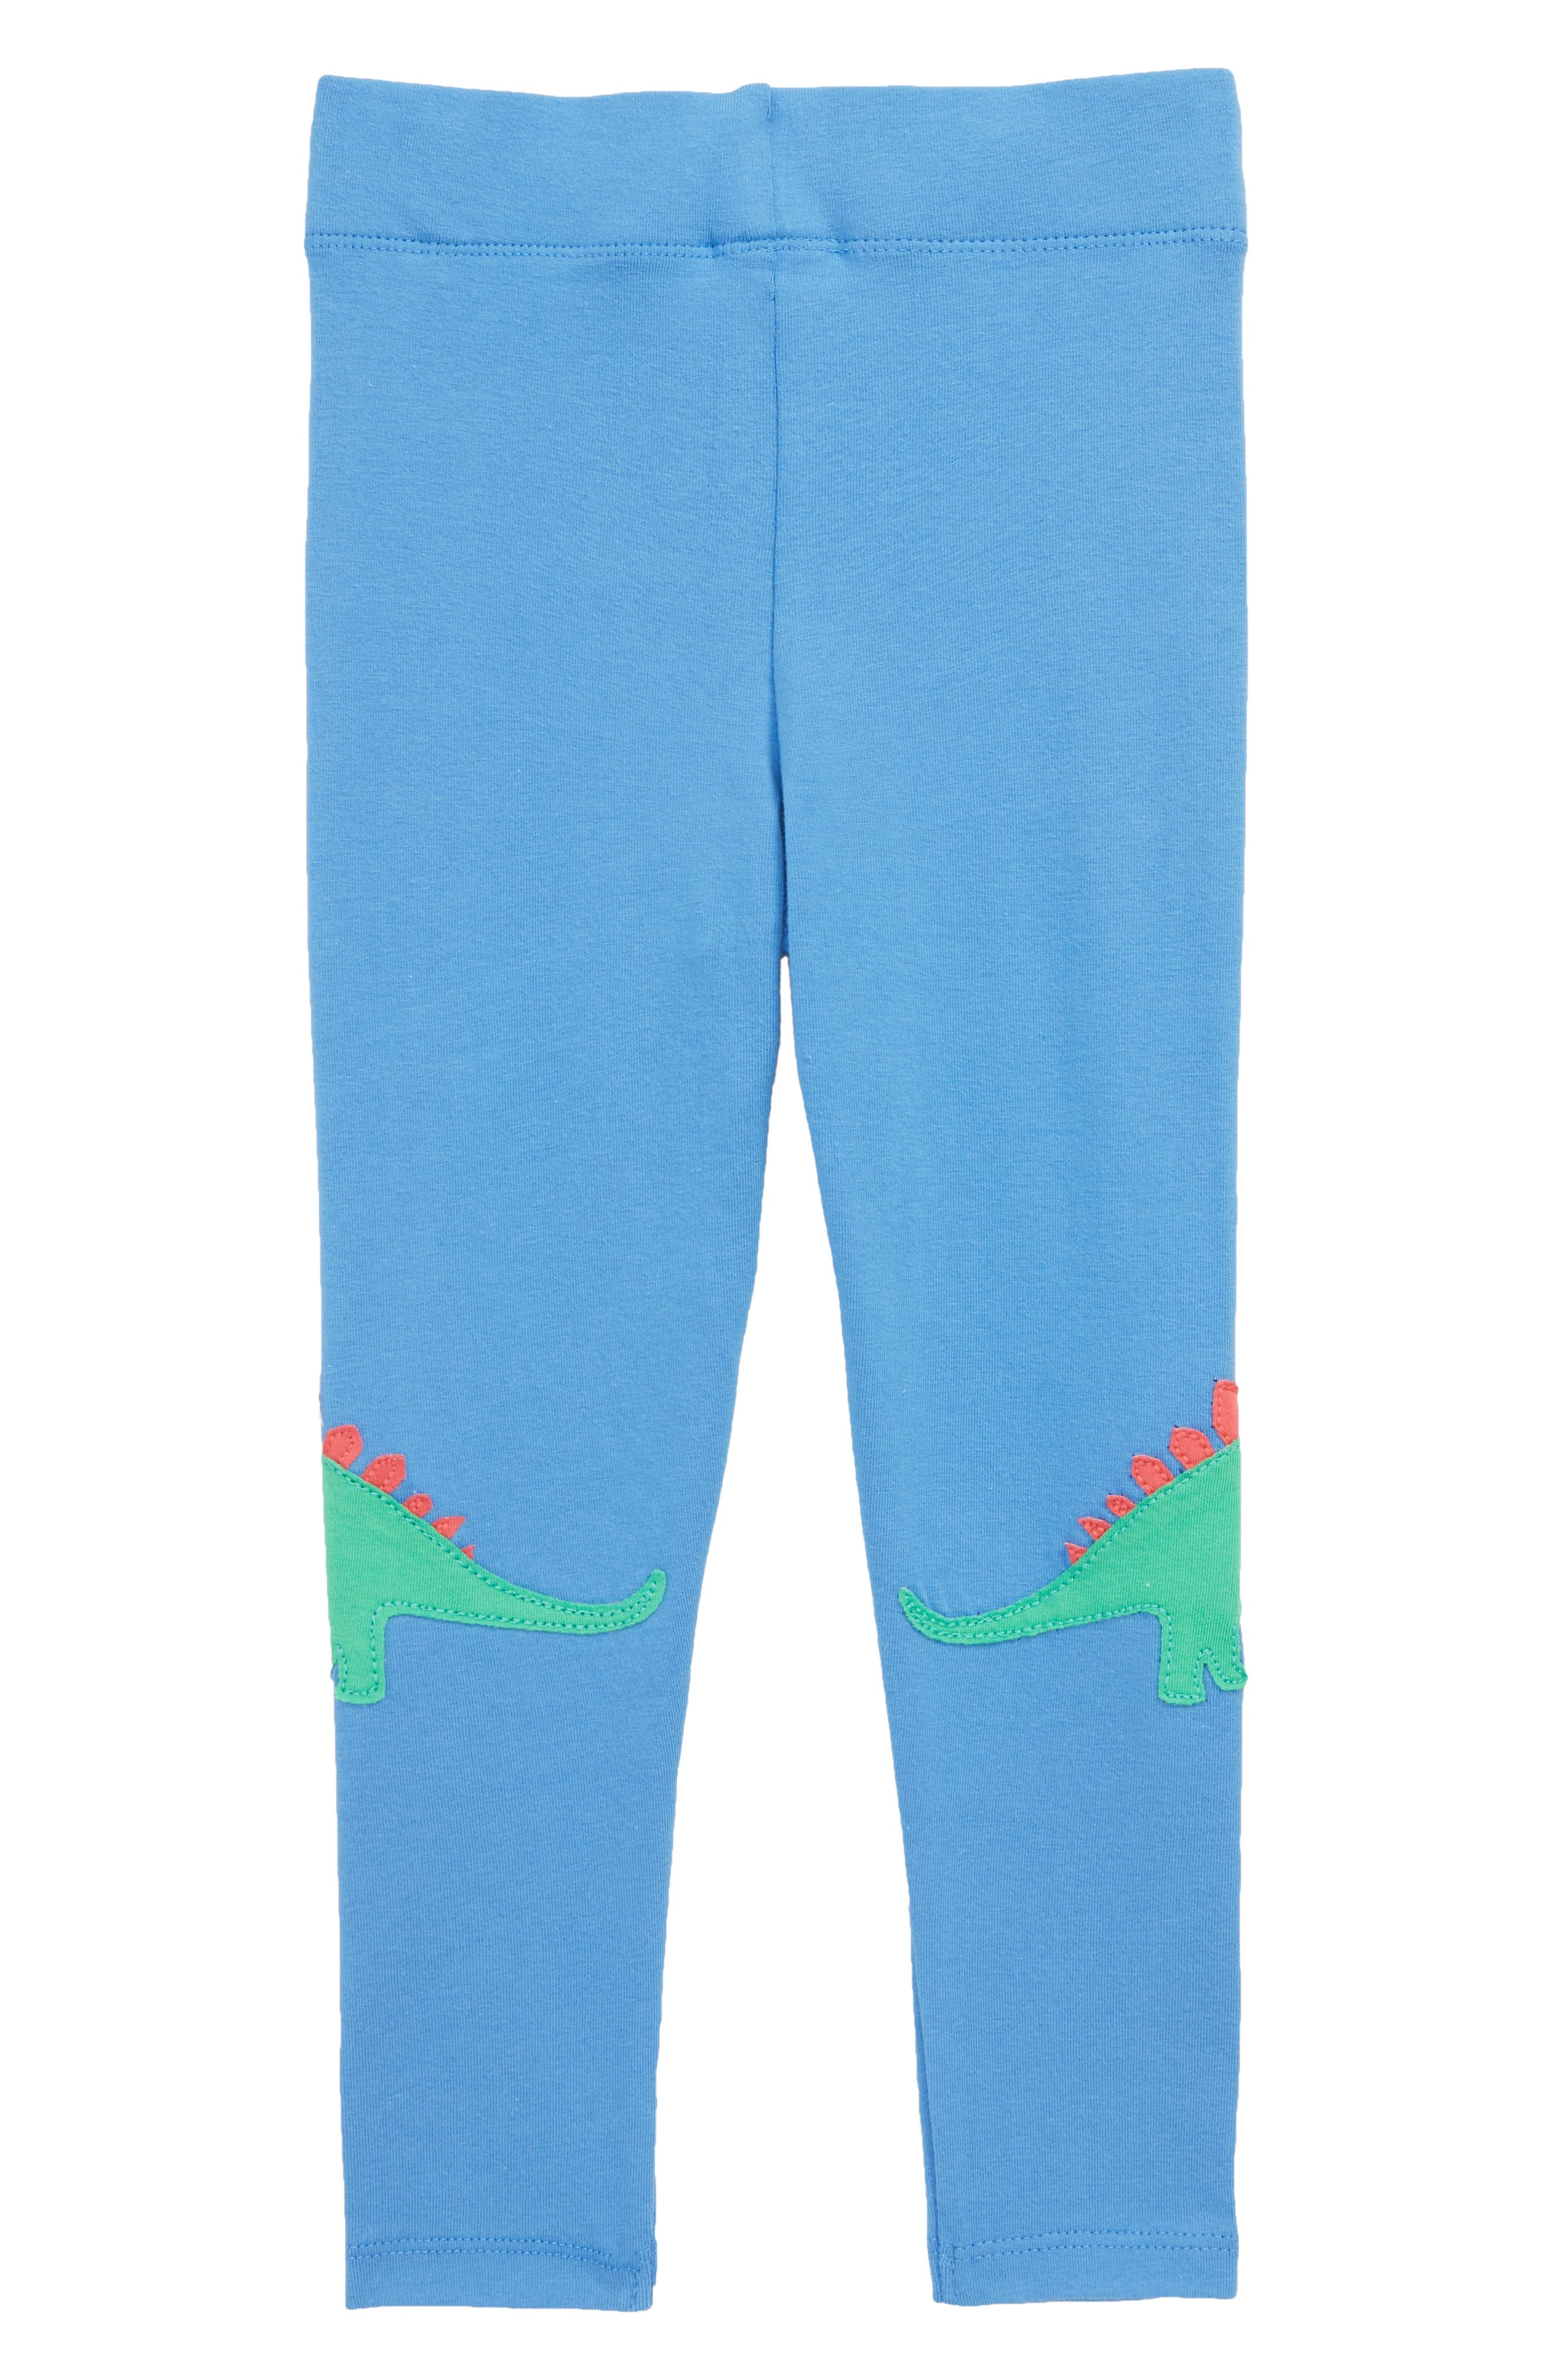 Appliqué Leggings,                             Alternate thumbnail 2, color,                             464